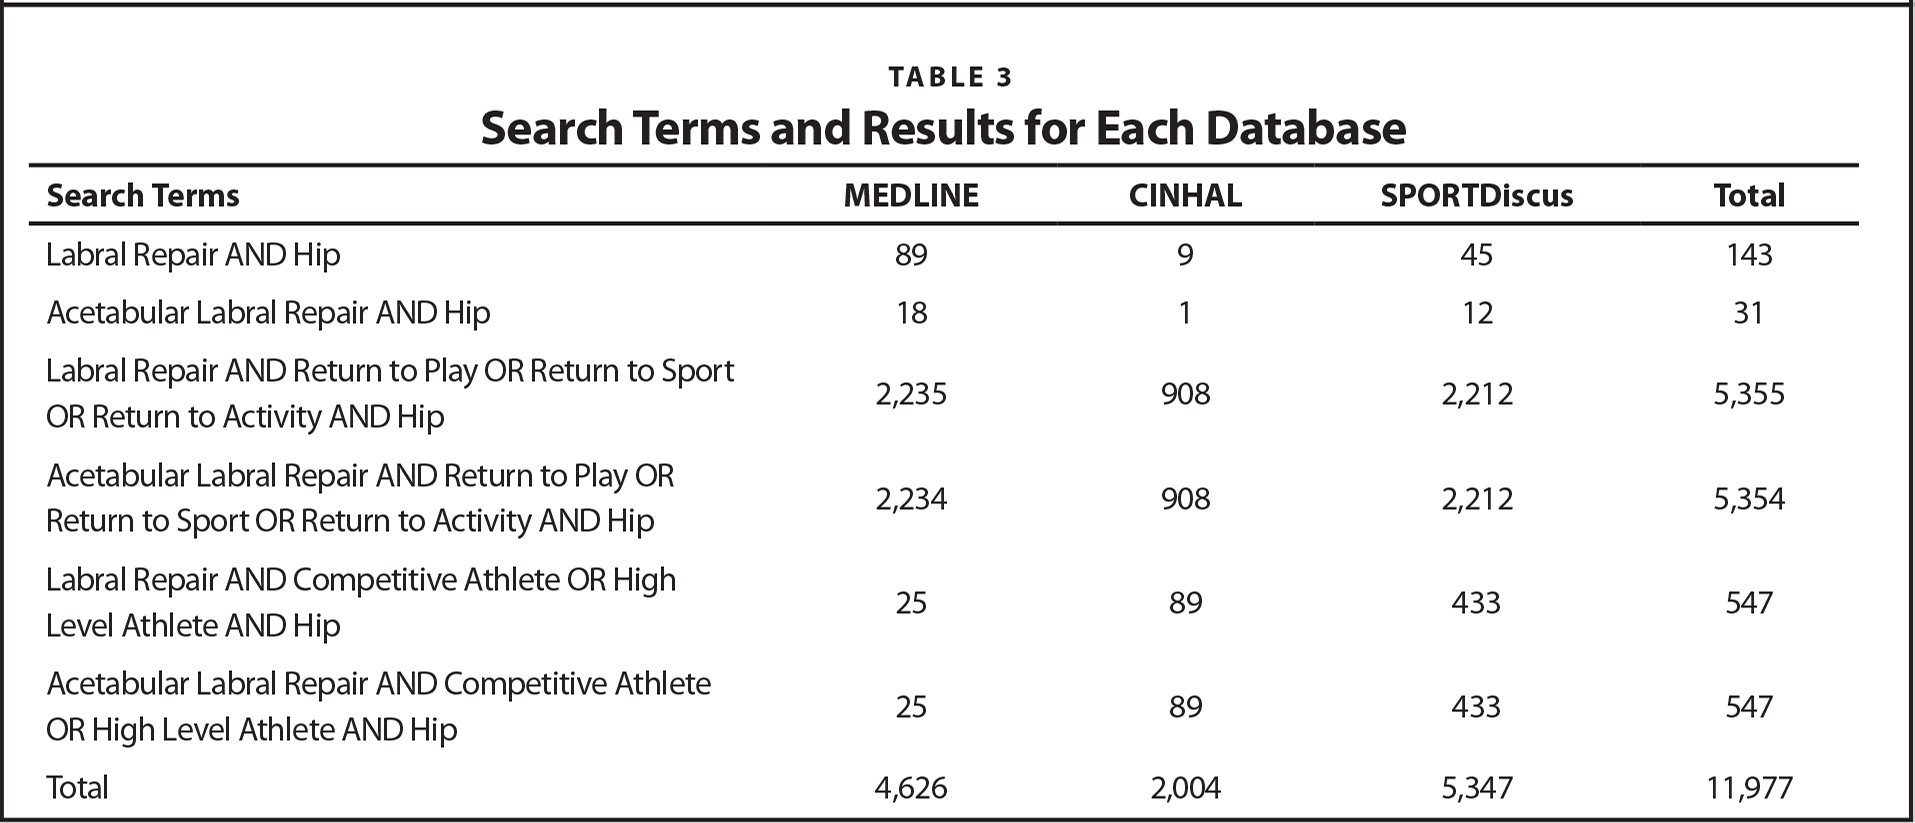 Search Terms and Results for Each Database